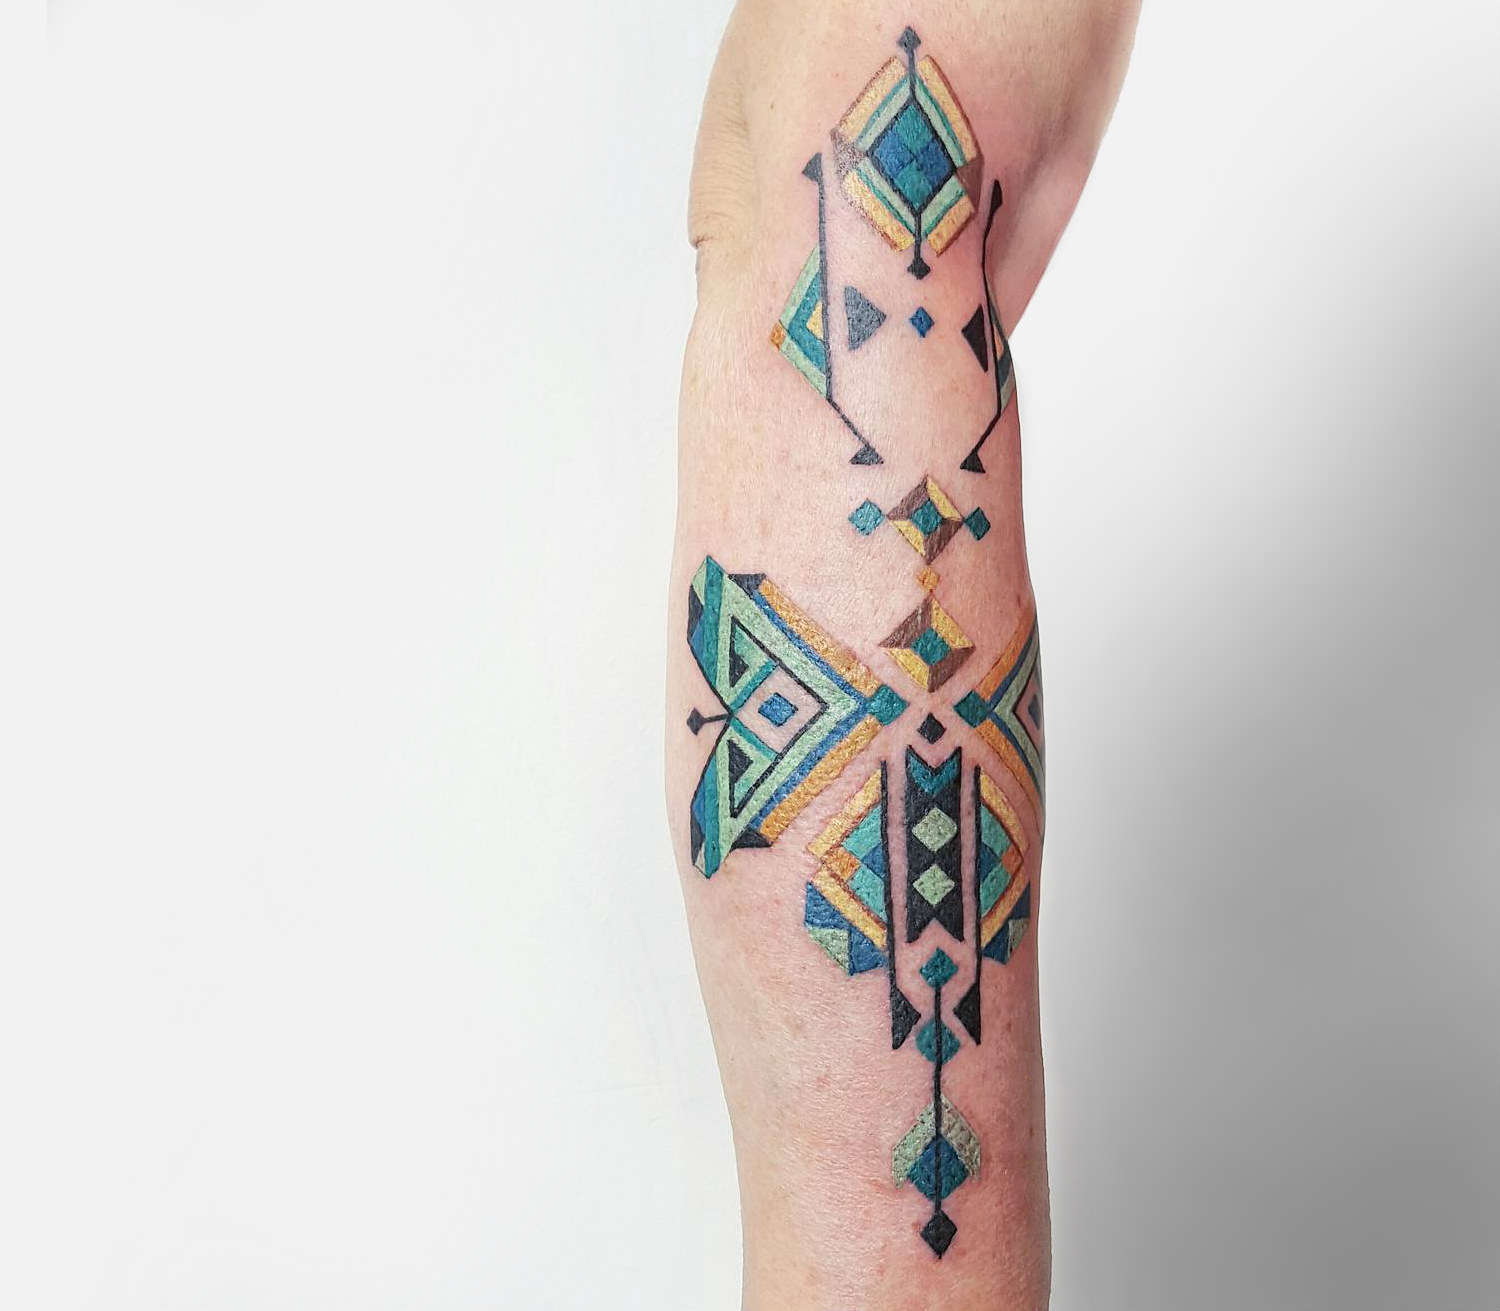 Brian Gomes blue and green geometric tattoo